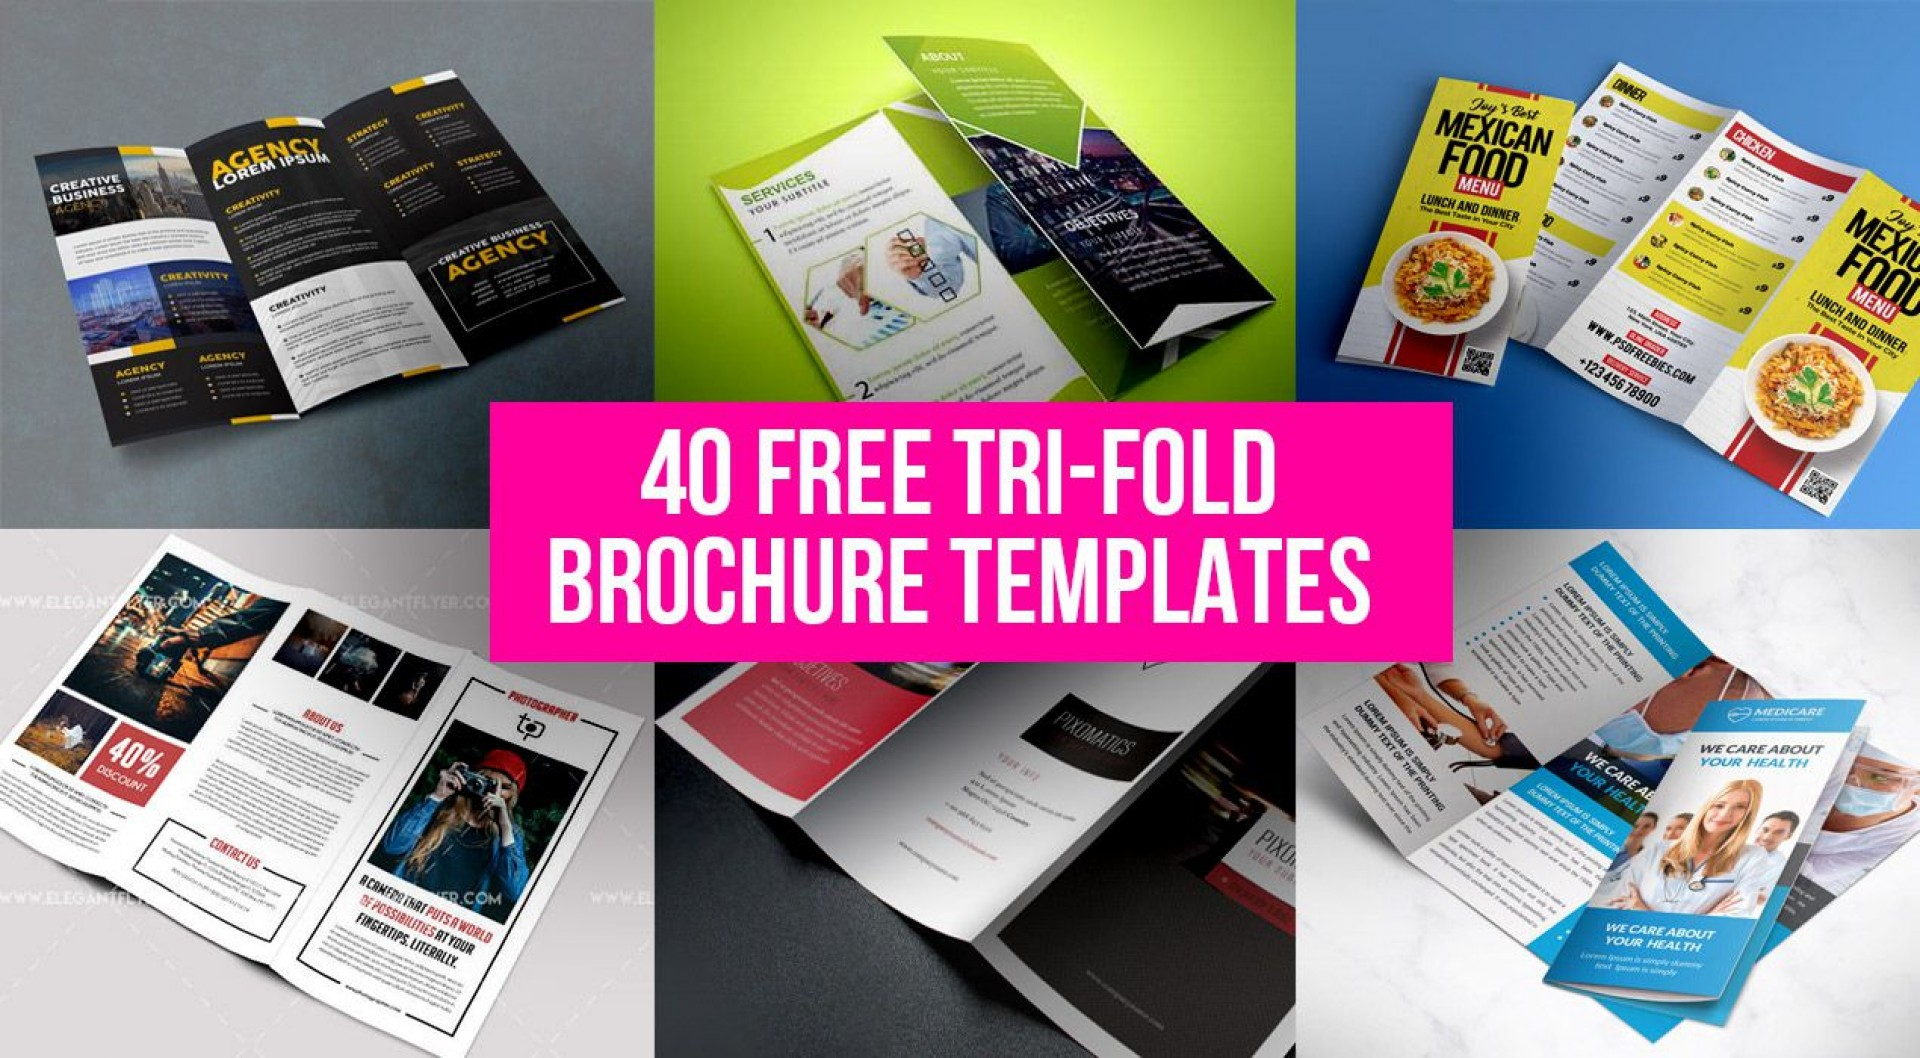 001 Amazing Free Trifold Brochure Template Picture  Tri Fold Download Illustrator Publisher1920